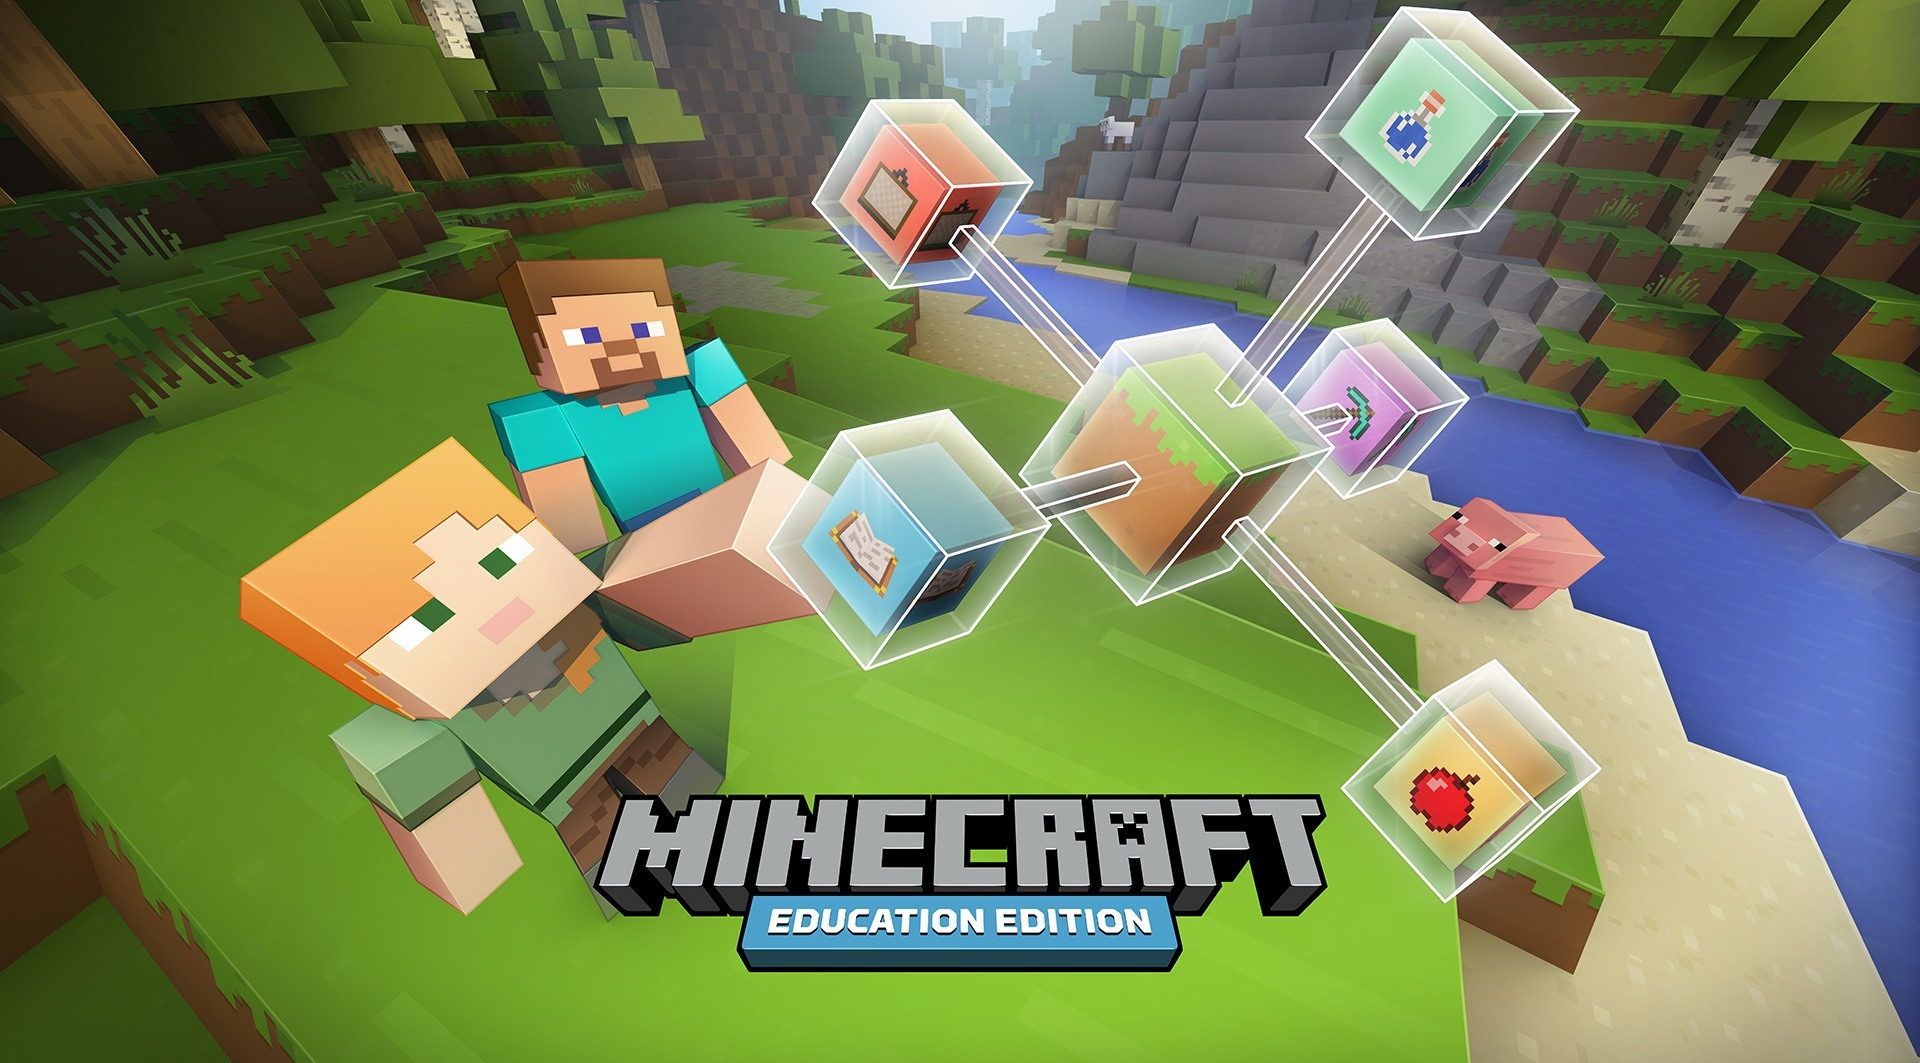 Minecraft Education Edition